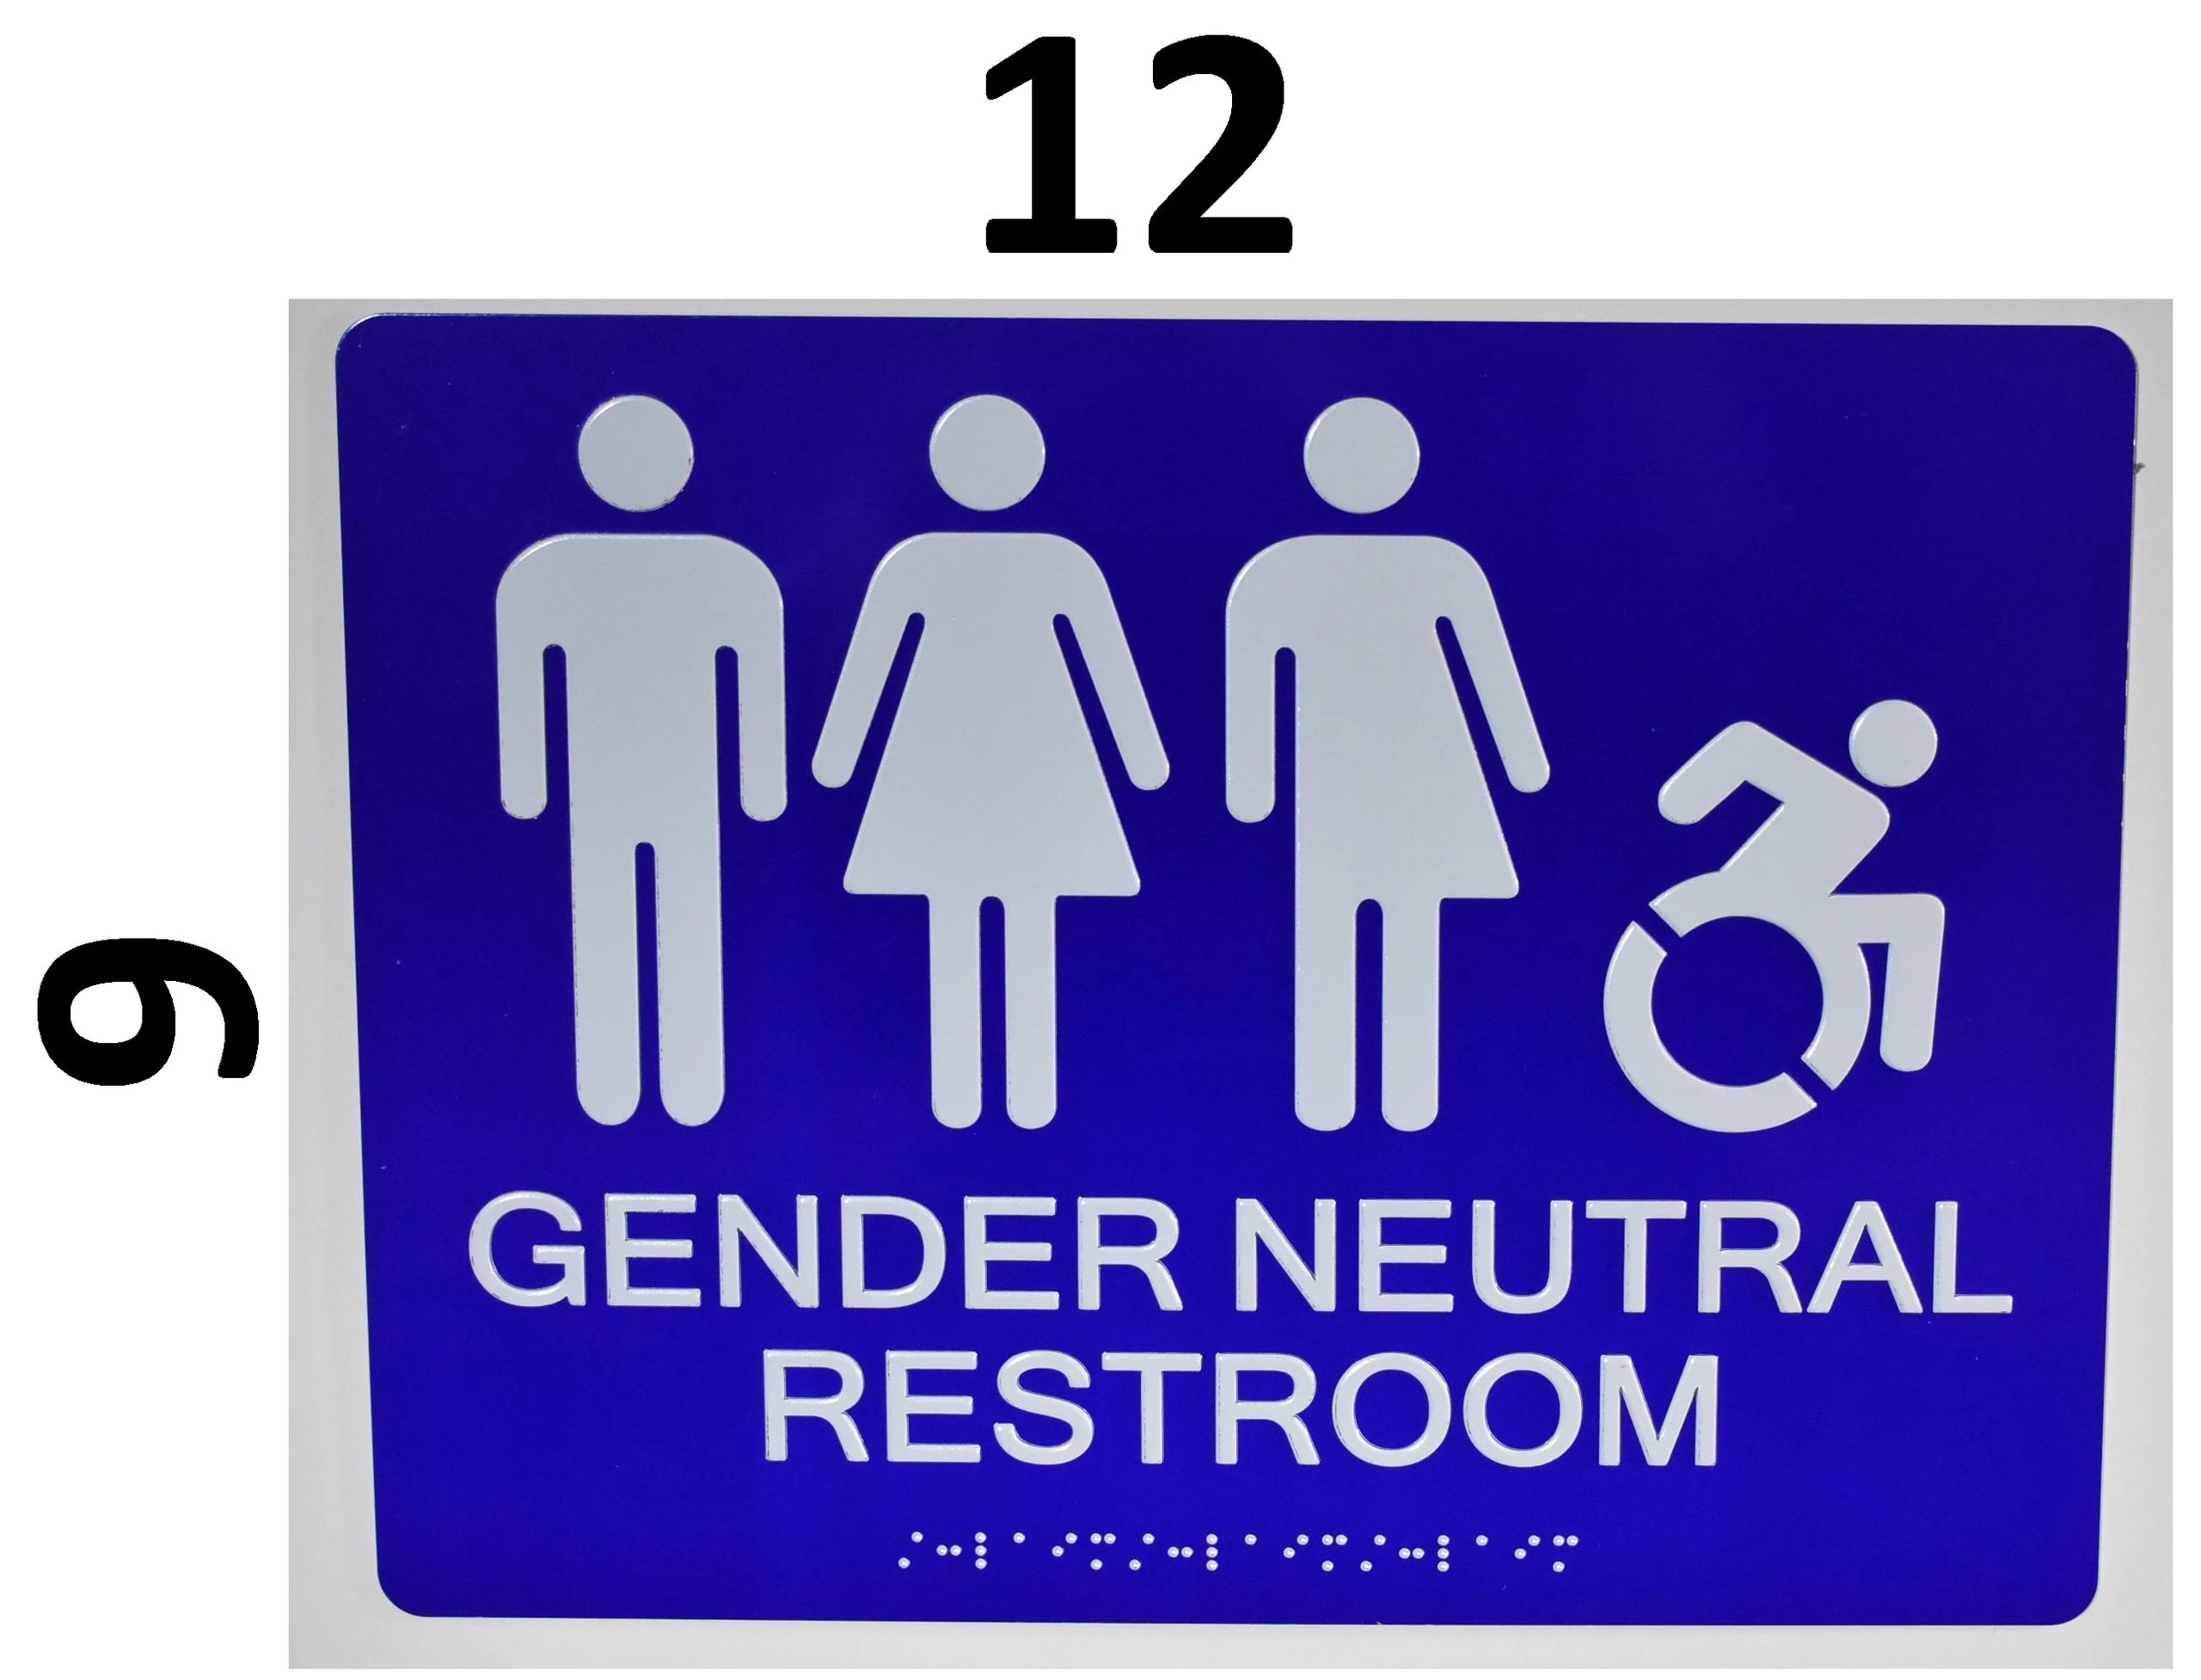 GENDER NEUTRAL RESTROOM ADA SIGNS